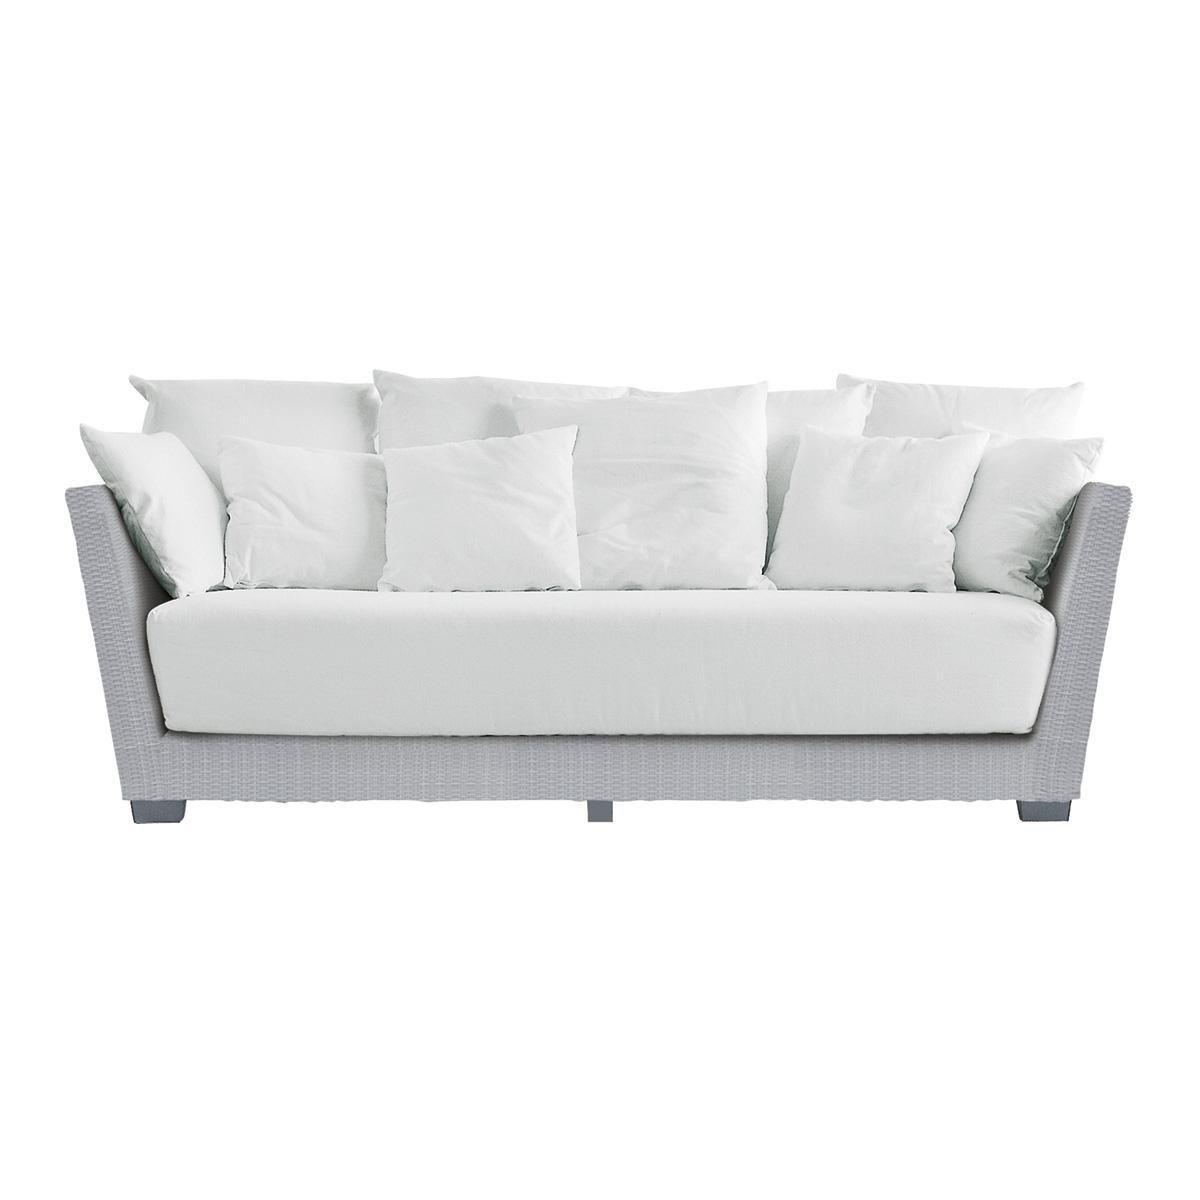 Outdoor Sofa Rattan Inout 503 Poly Rattan Outdoor Sofa